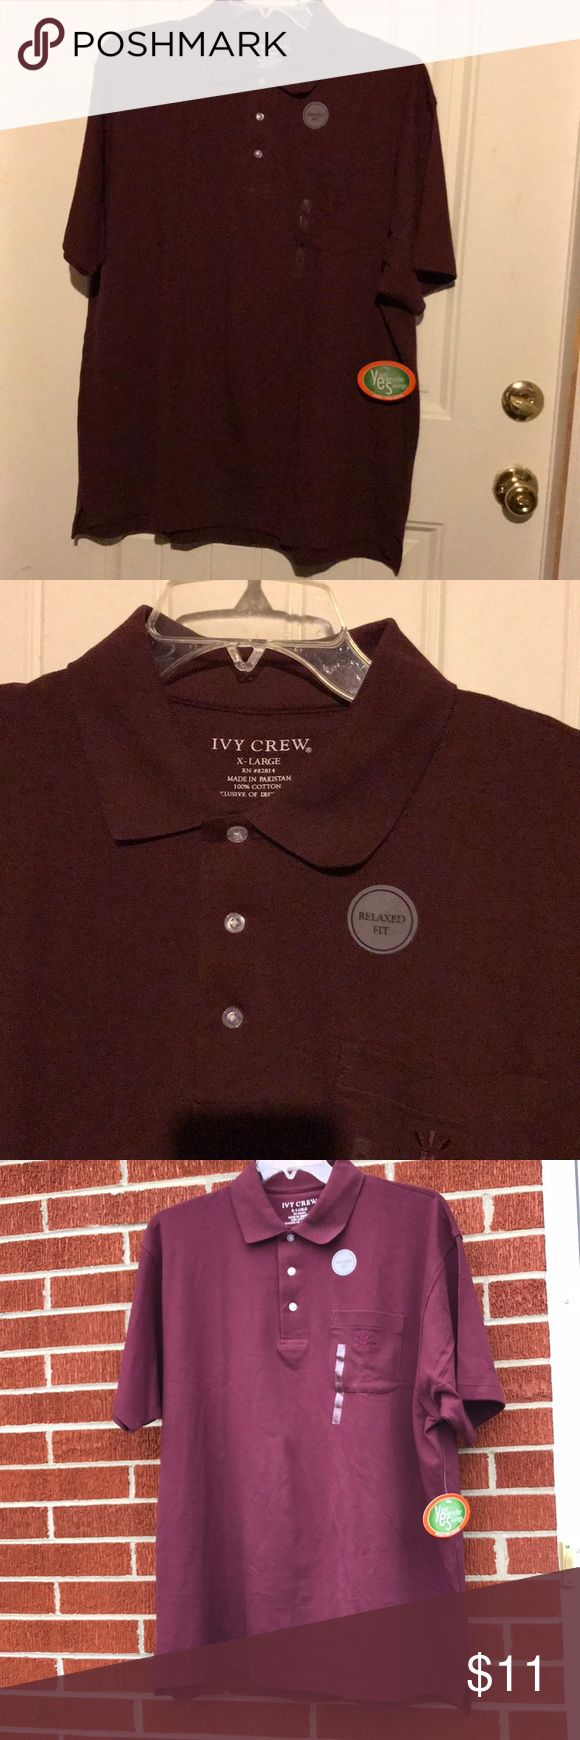 NWT Ivy Crew Relaxed Fit SS Burgundy Polo Shirt XL New with tags Men's Ivy Crew burgundy polo shirt has a Relaxed Fit and is size x-large. Shirt has their logo embroidered on pocket. Top has a collar, 3 buttons, short sleeves and slits on each side. Darker pics were taken inside while lighter ones outside in the shade on a sunnier day. Pakistan 100% cotton. Ivy Crew Shirts Polos